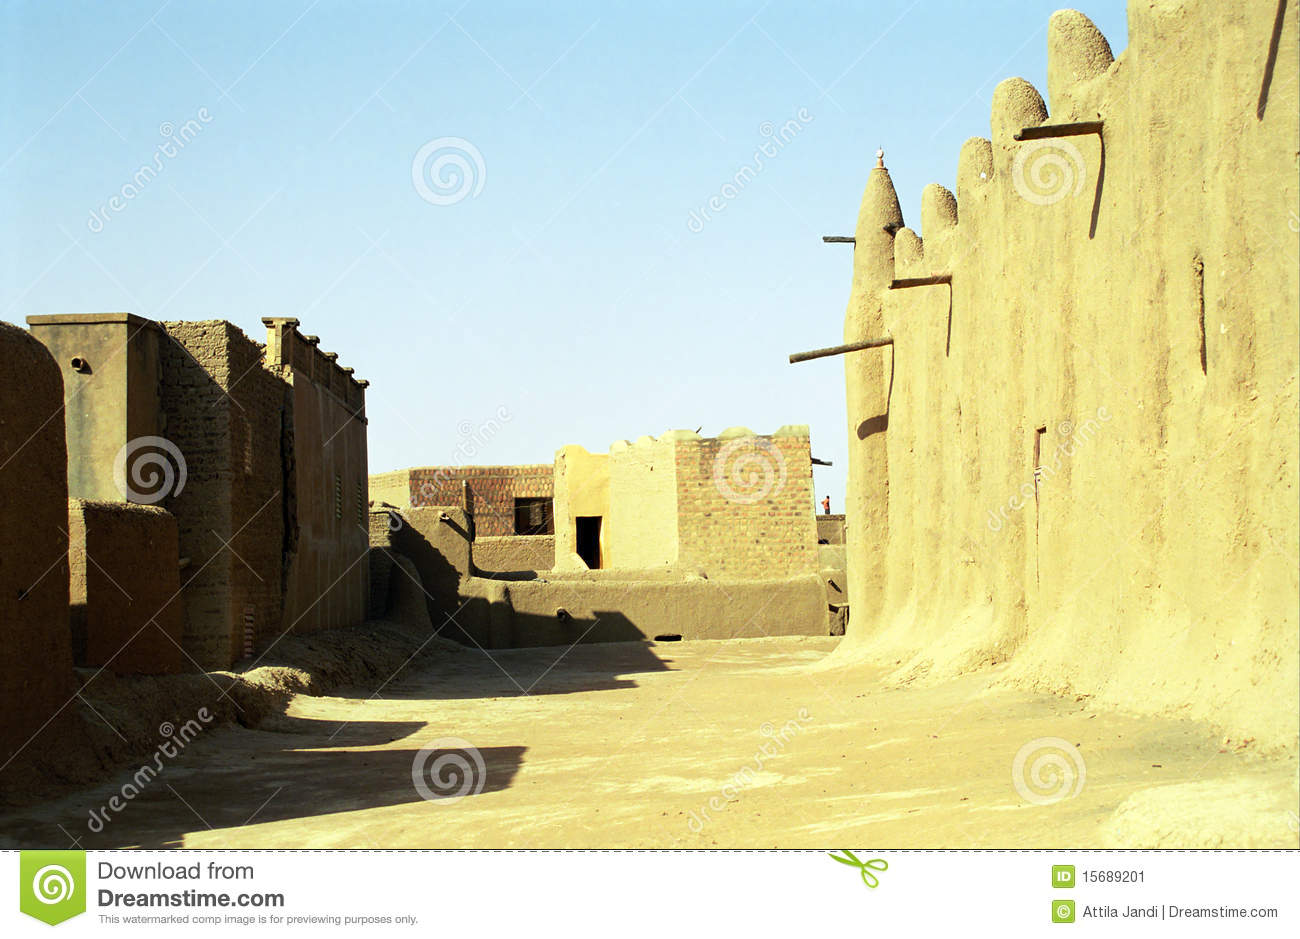 The Great Mosque, Djenne, Mali